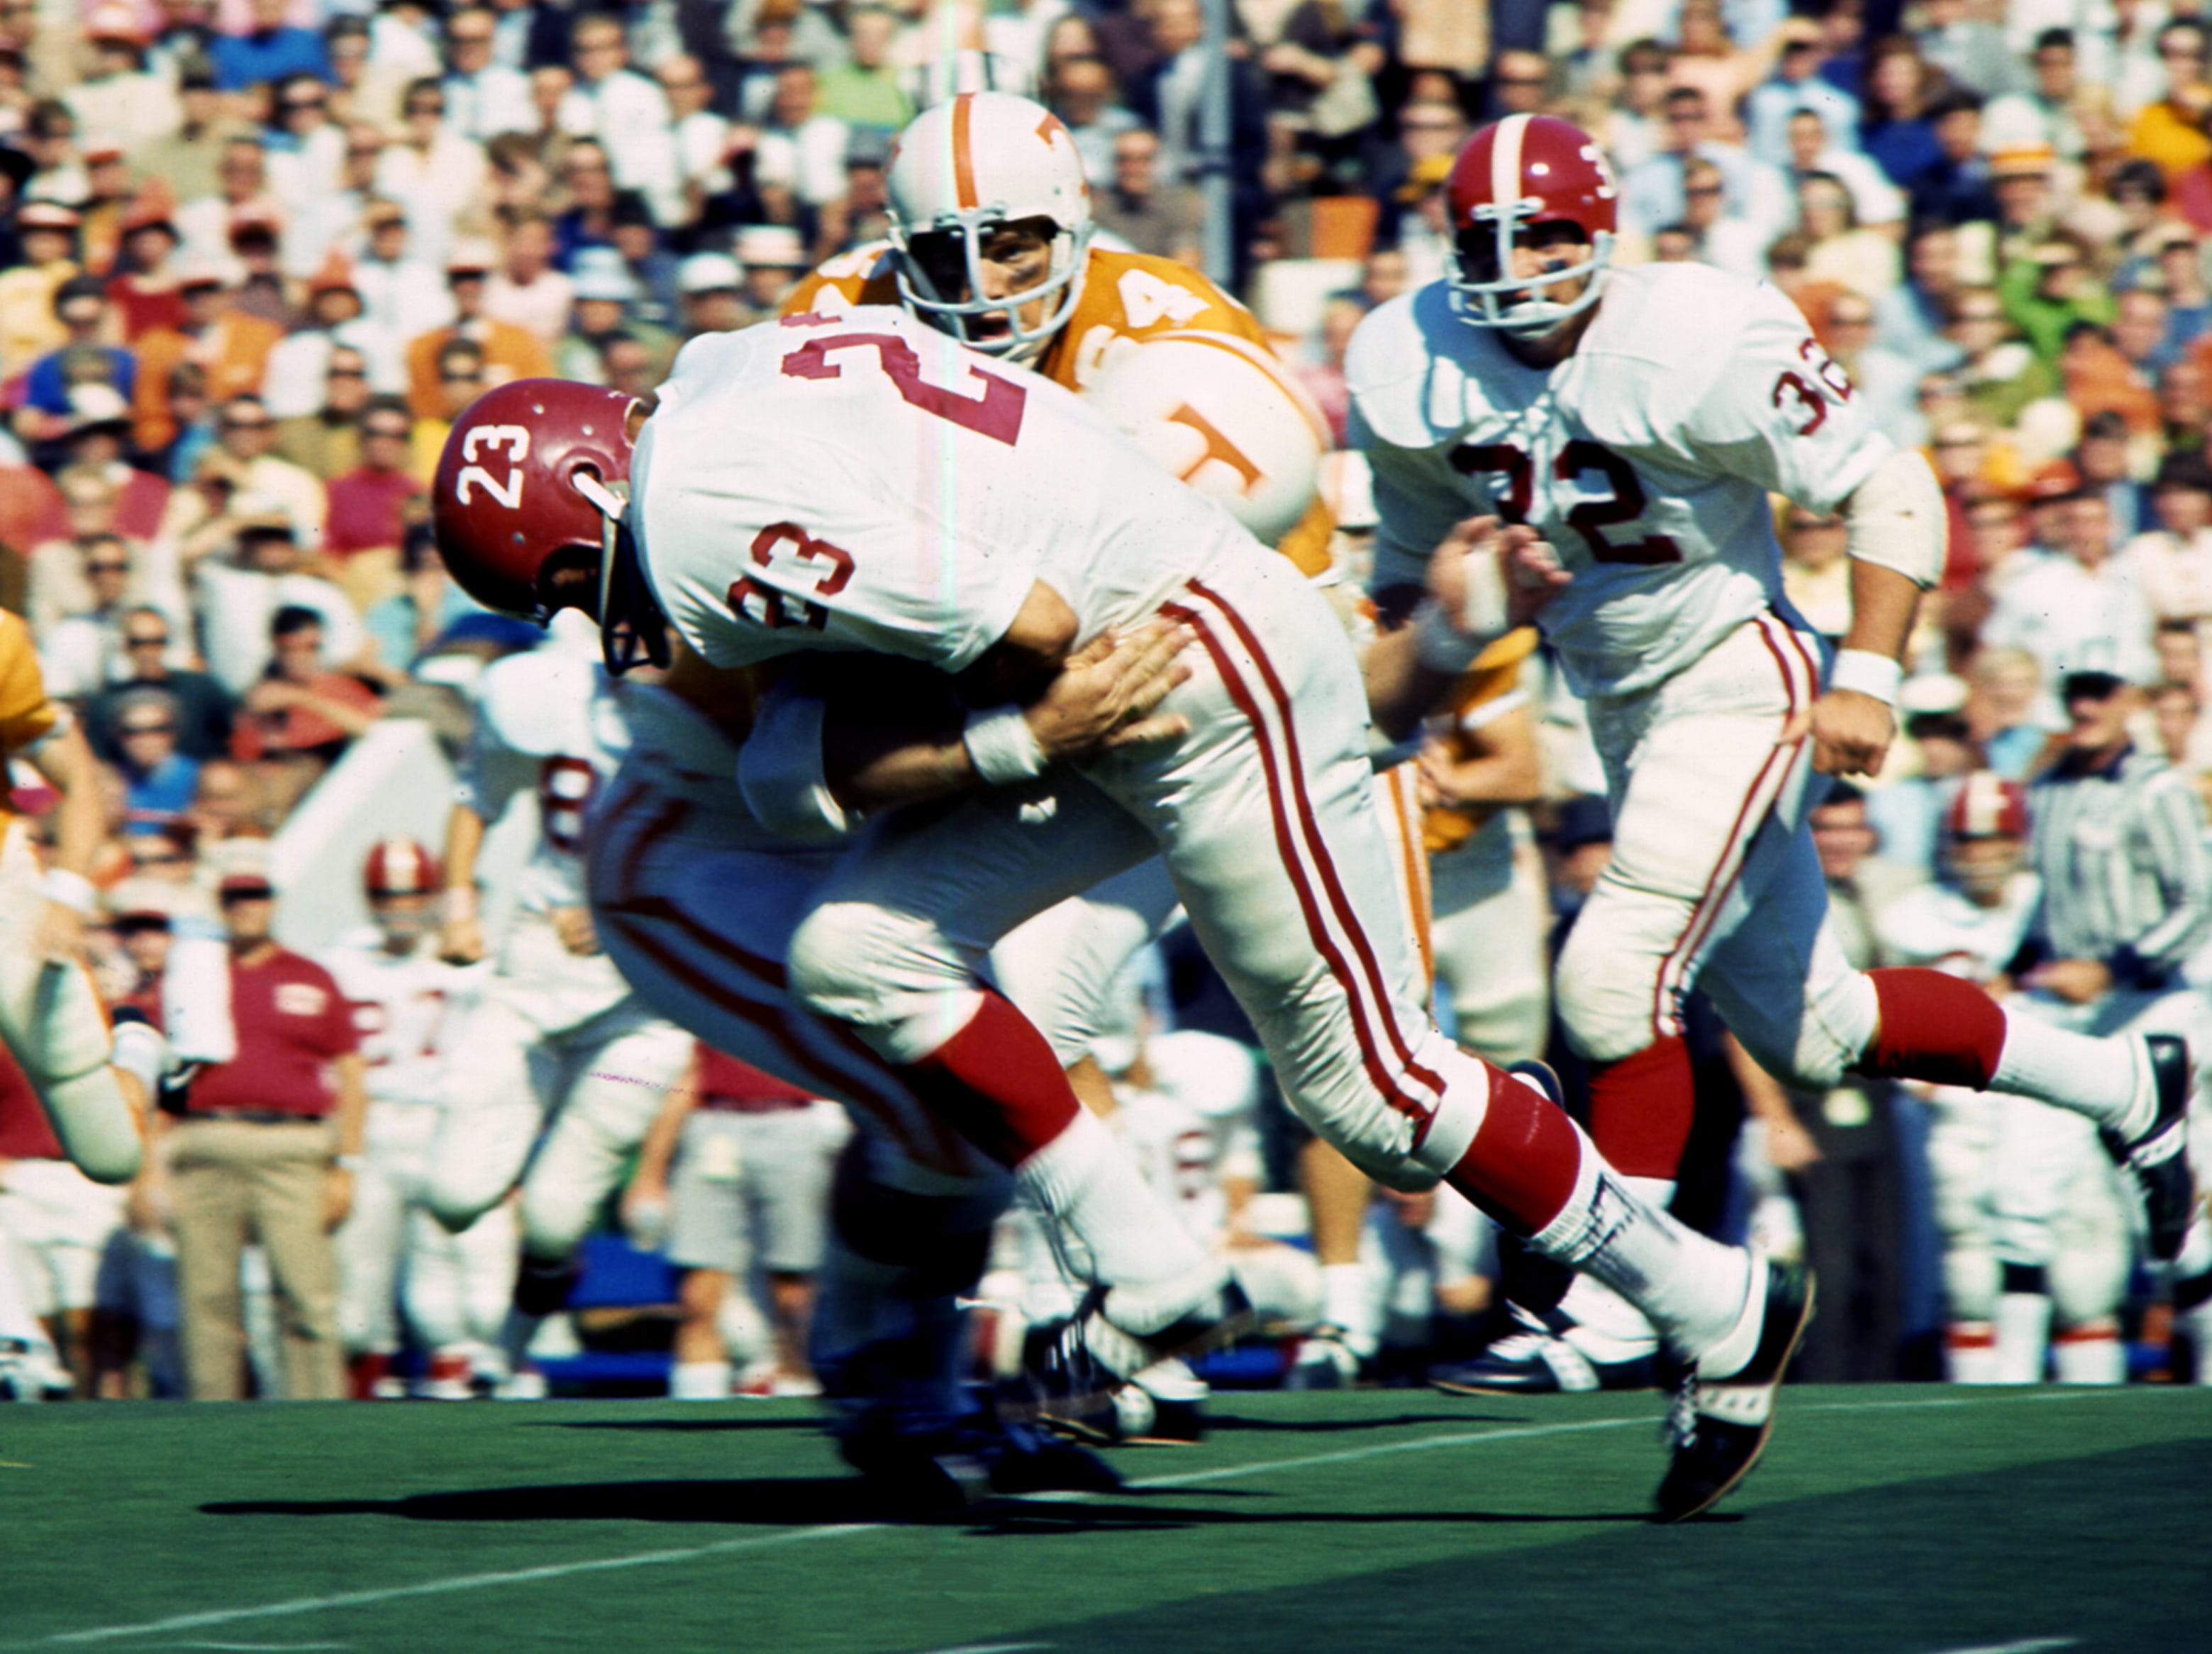 Alabama running back  (23) attempts the break the tackle of a Tennessee defender. Tennessee survive a missed two-point conversion, an onside kick and a missed field goal in the final minute and 12 seconds to win 10-9 over Alabama before 63,392 fans at Neyland Stadium Oct. 19, 1968.